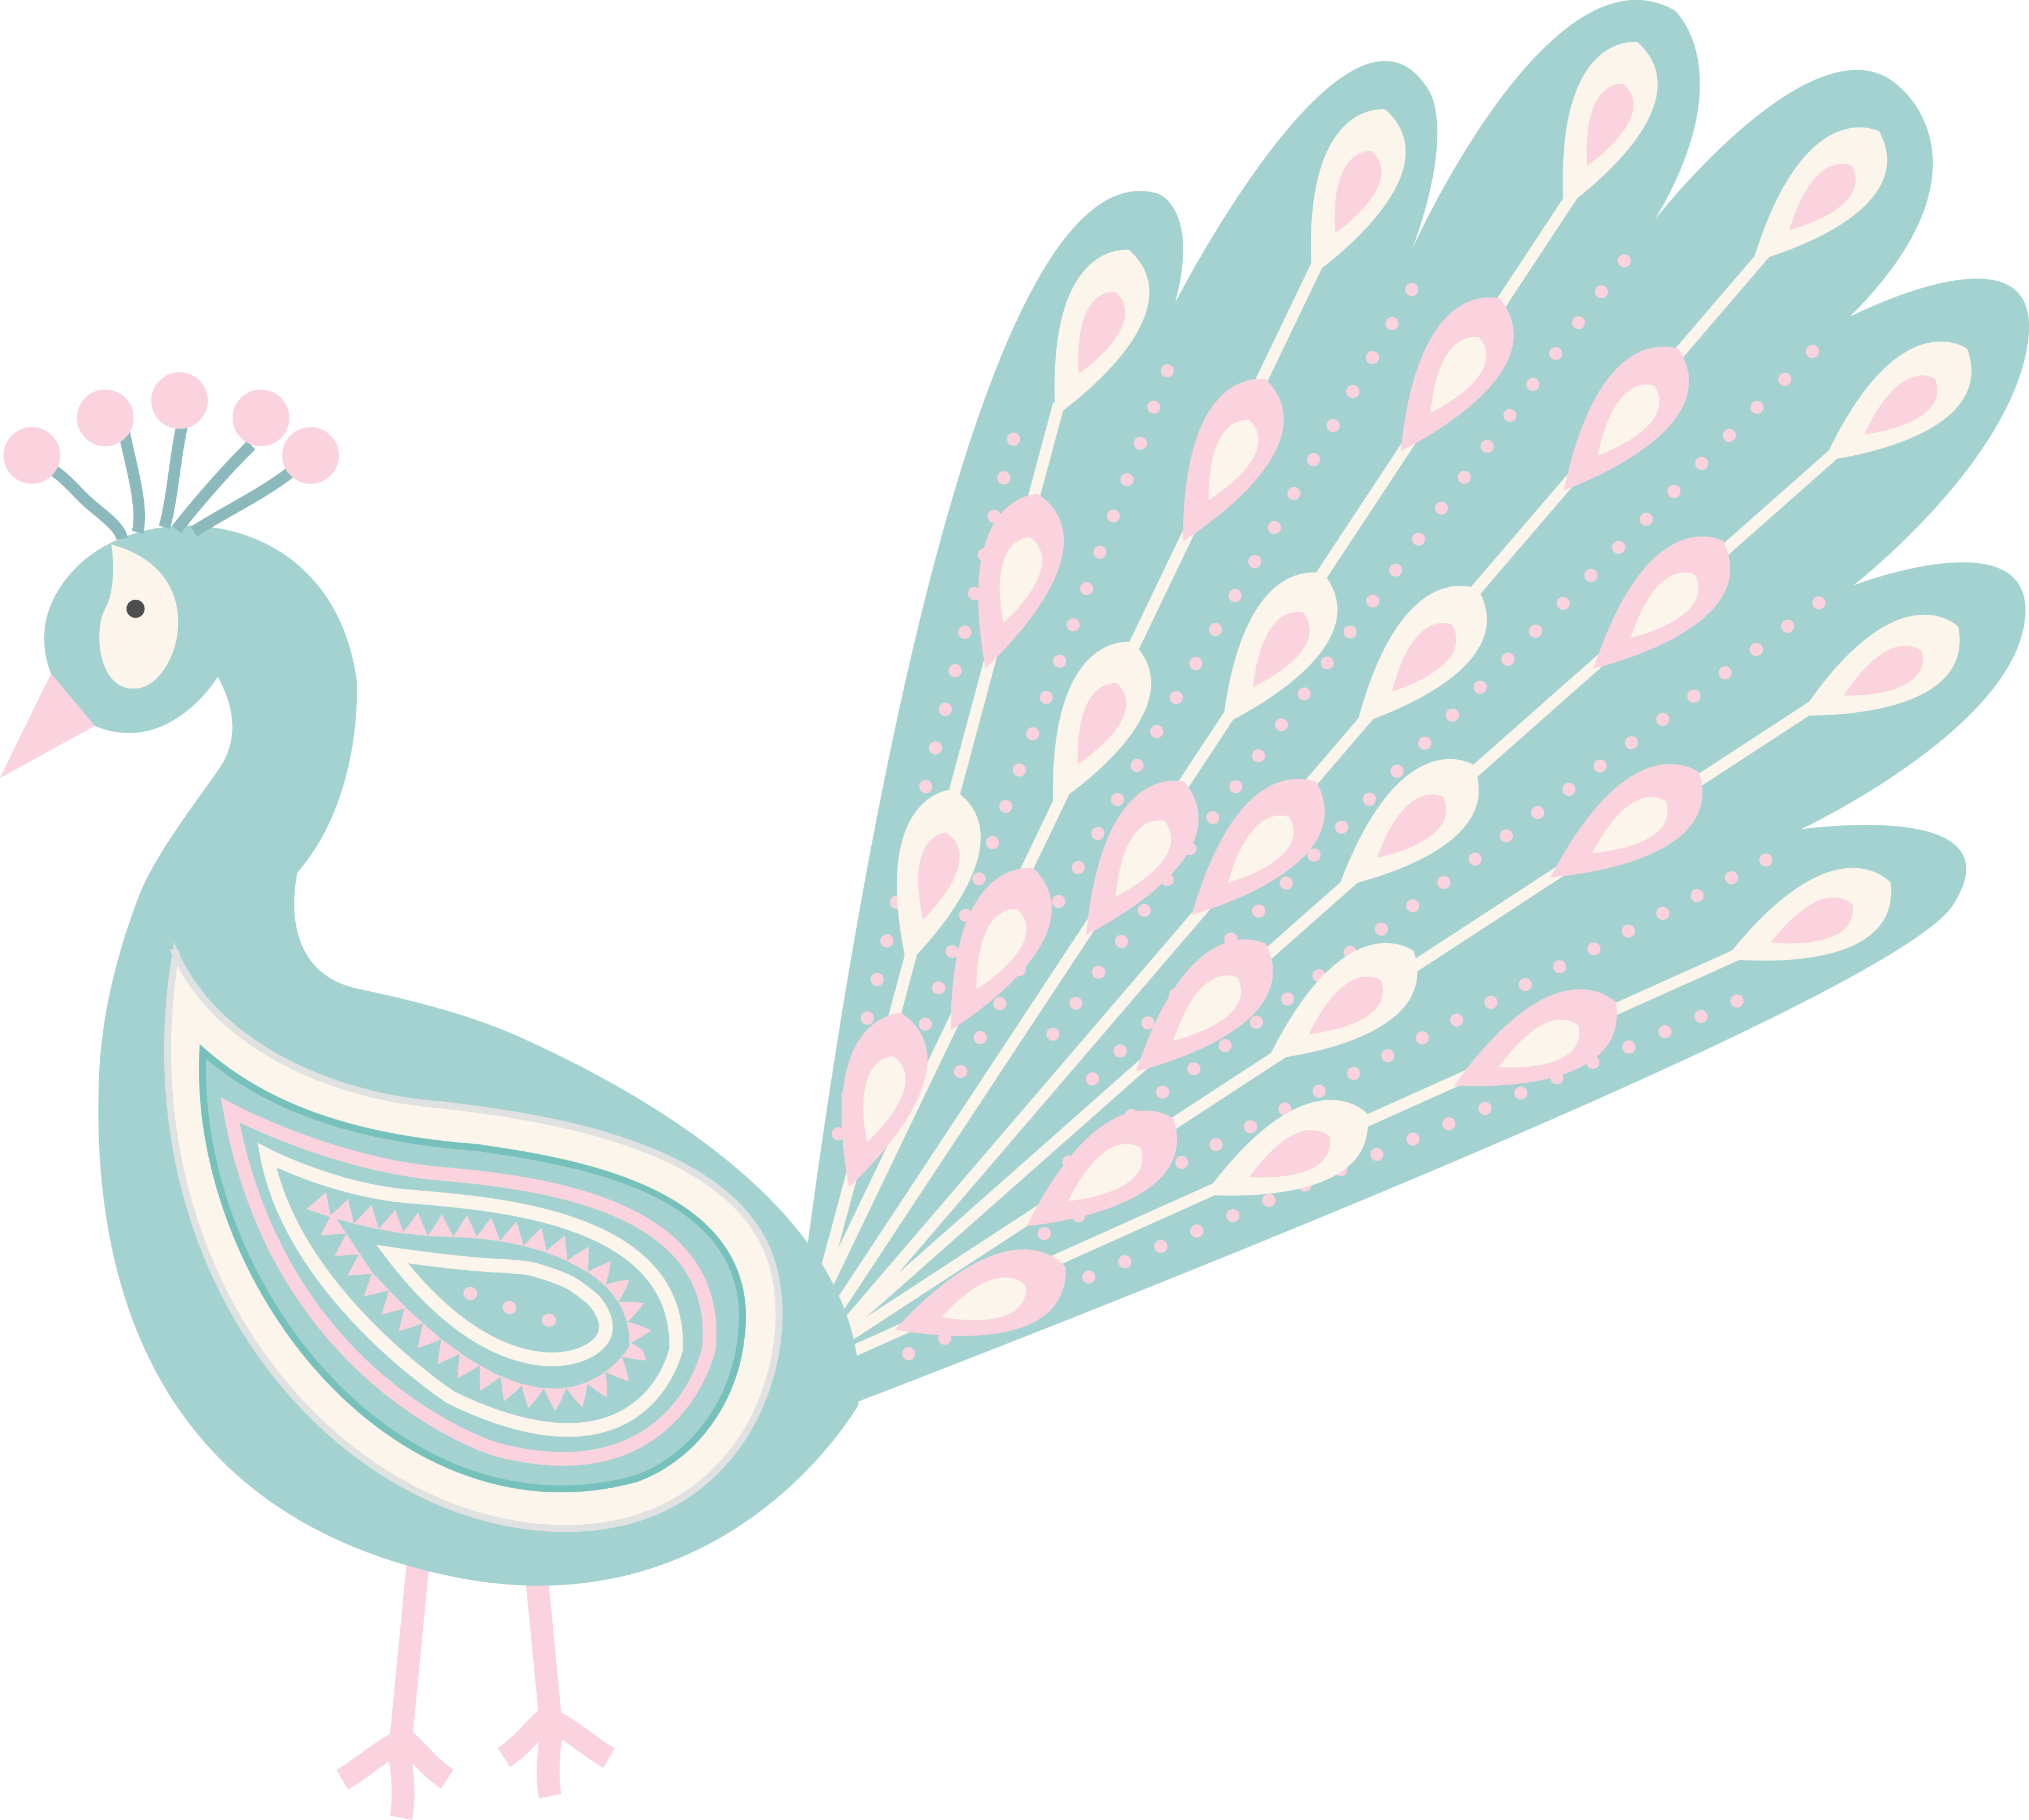 Feather clipart duck feather. Cartoon peafowl peacock transprent